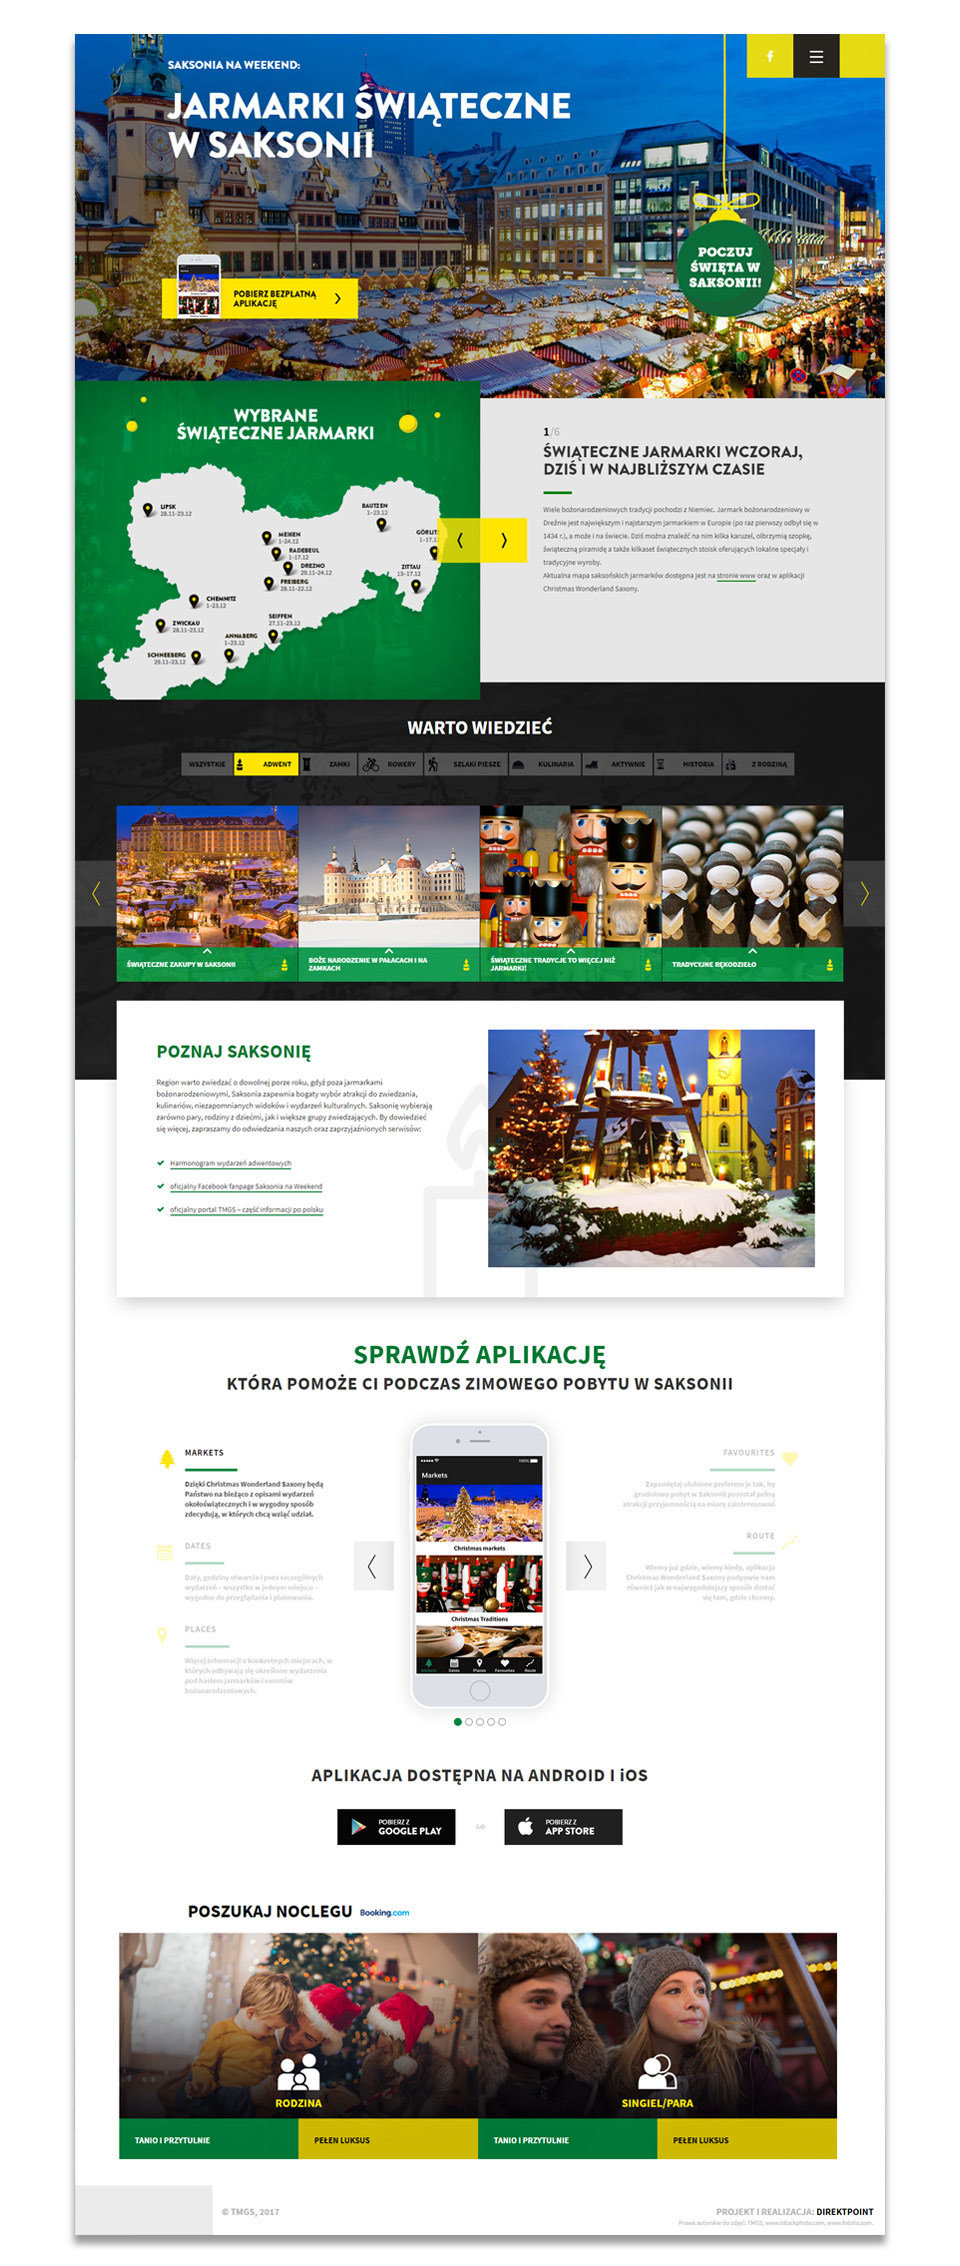 Landing page design. Mobile first design makes it easier to use from smartphones.